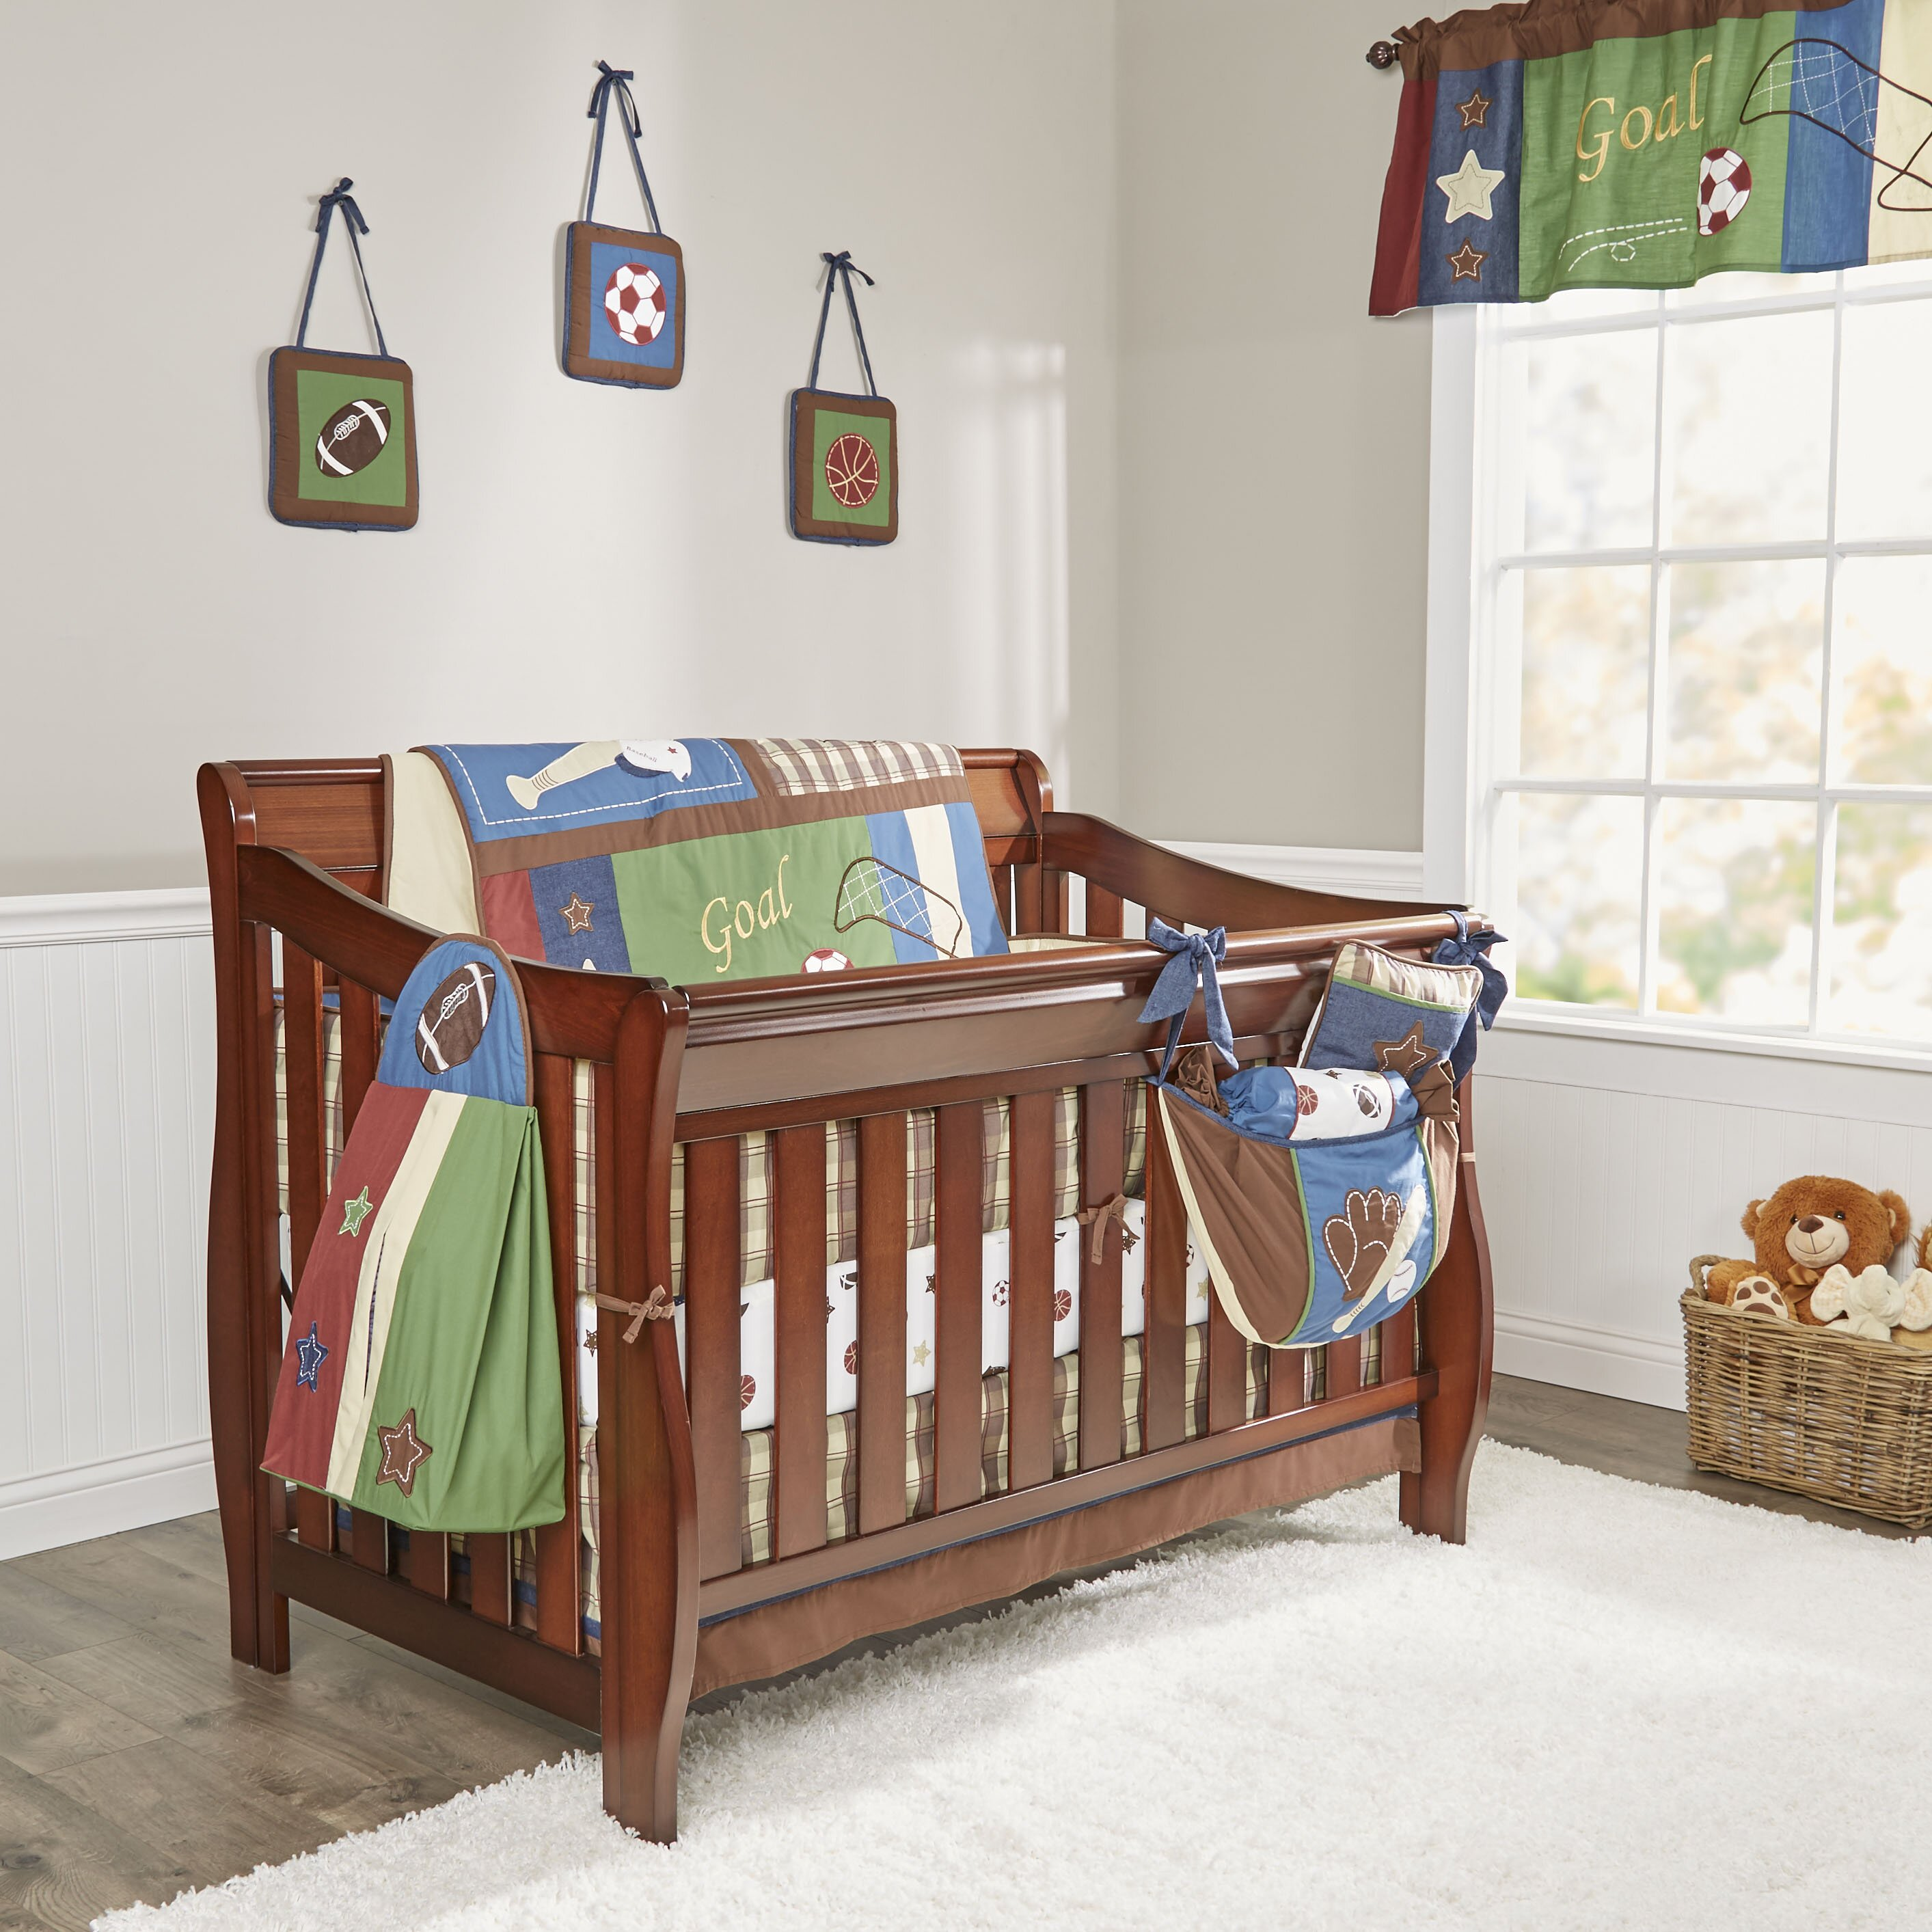 Geenny boutique classic sport 13 piece crib bedding set reviews wayfair - Geenny crib bedding sets ...